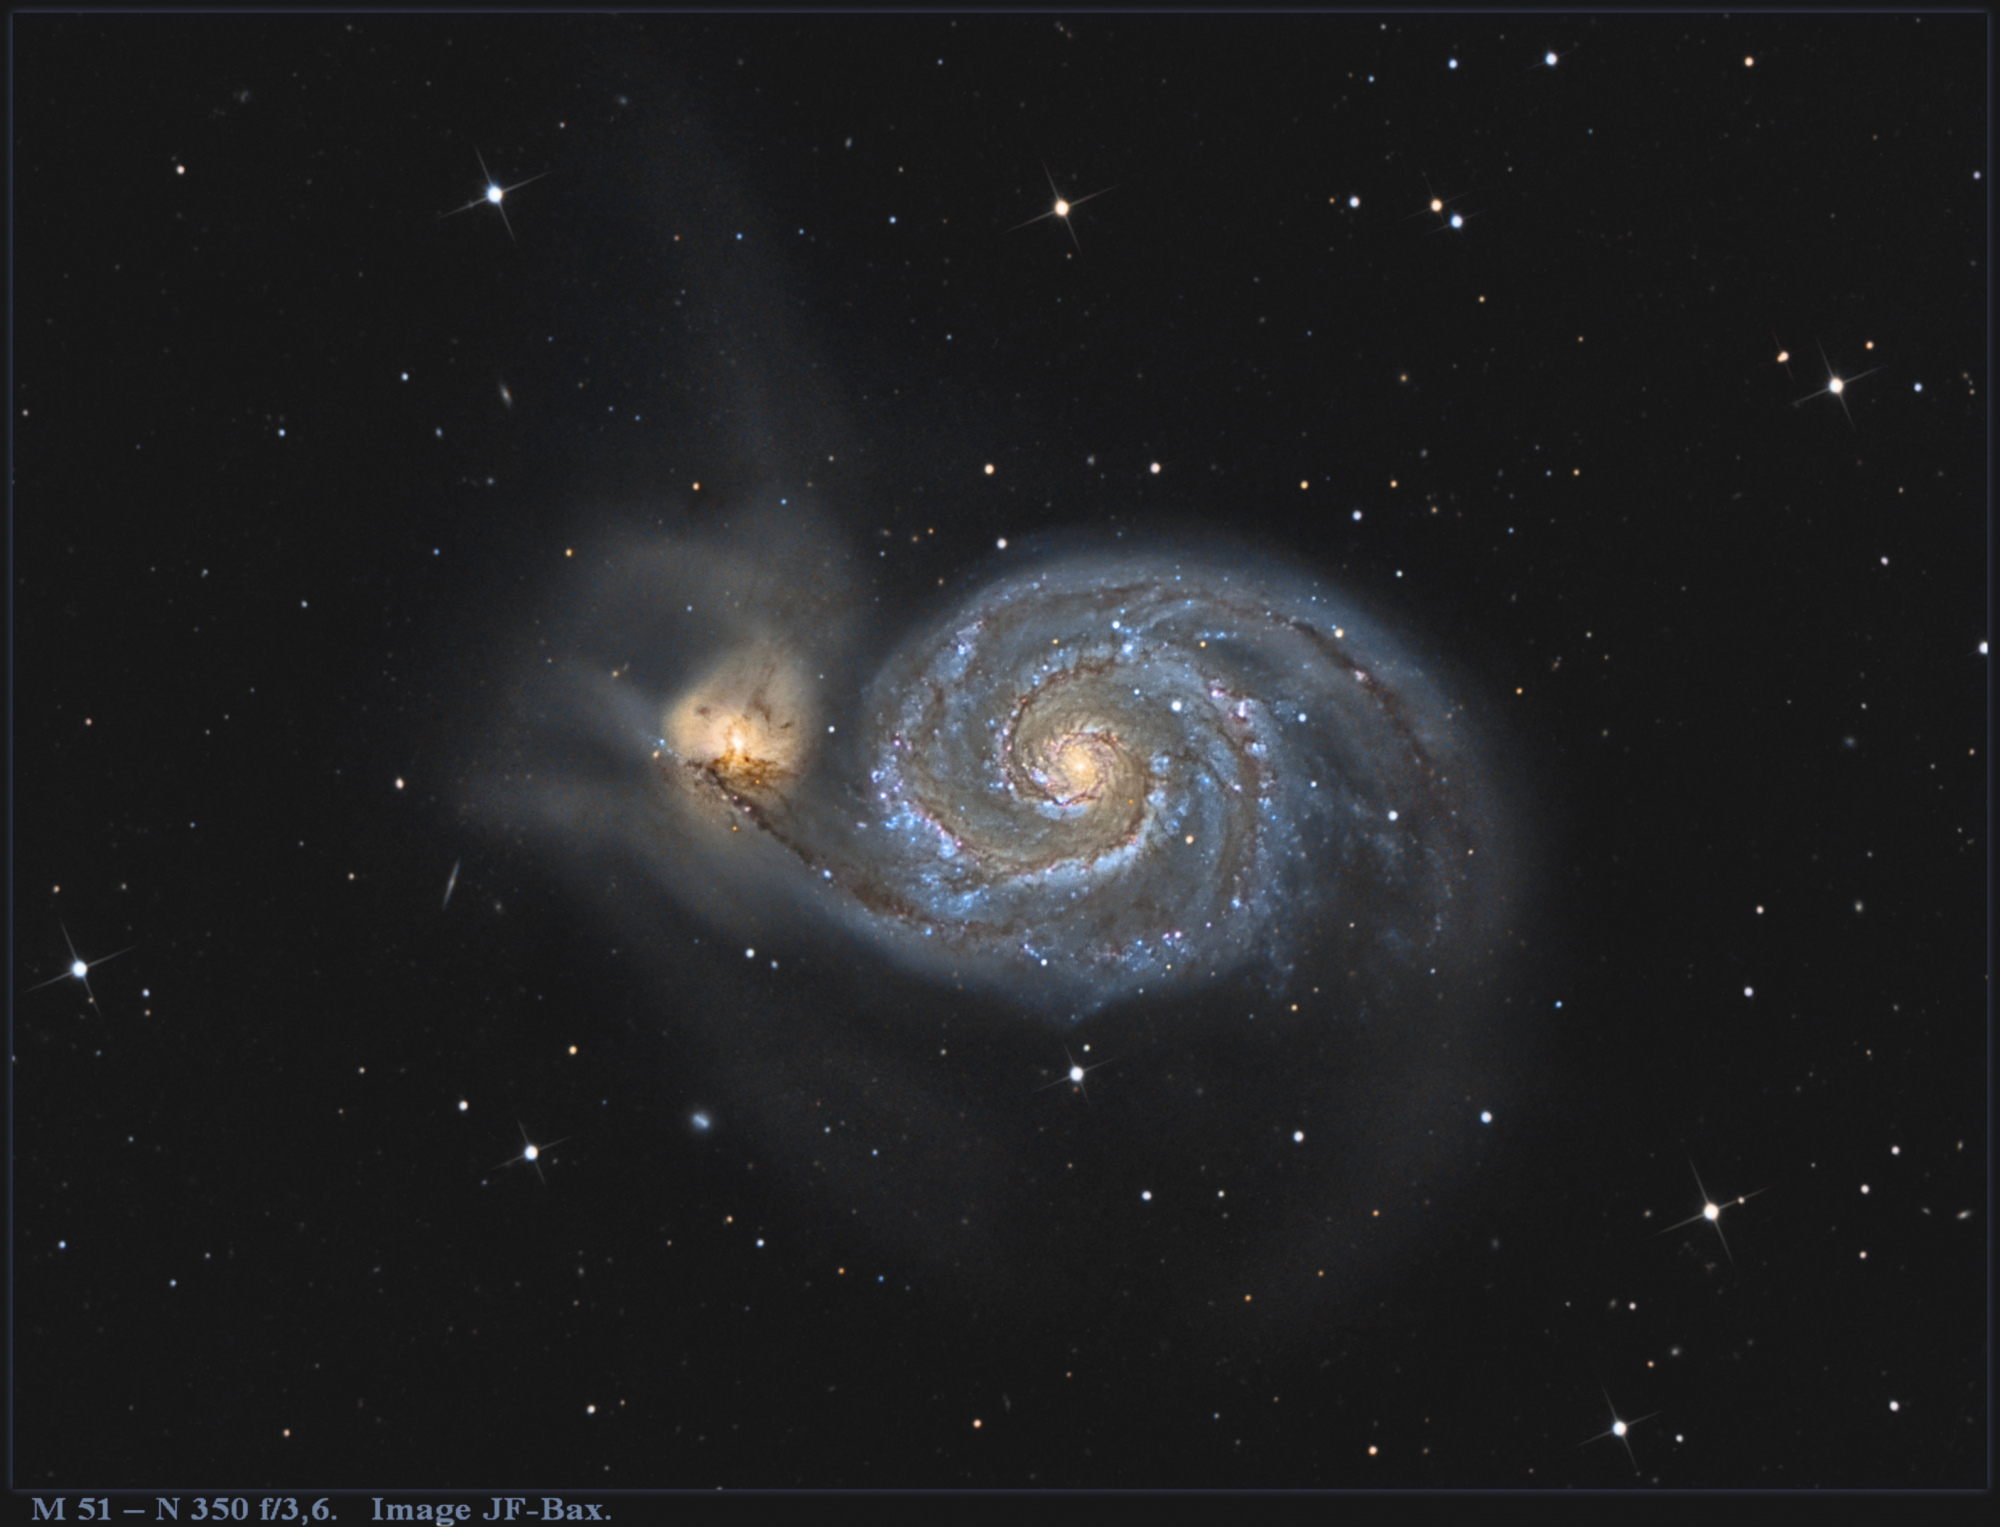 M51-final-cadre_web2.thumb.jpg.8e396d45af05ee609ee24960cd1df6ea.jpg